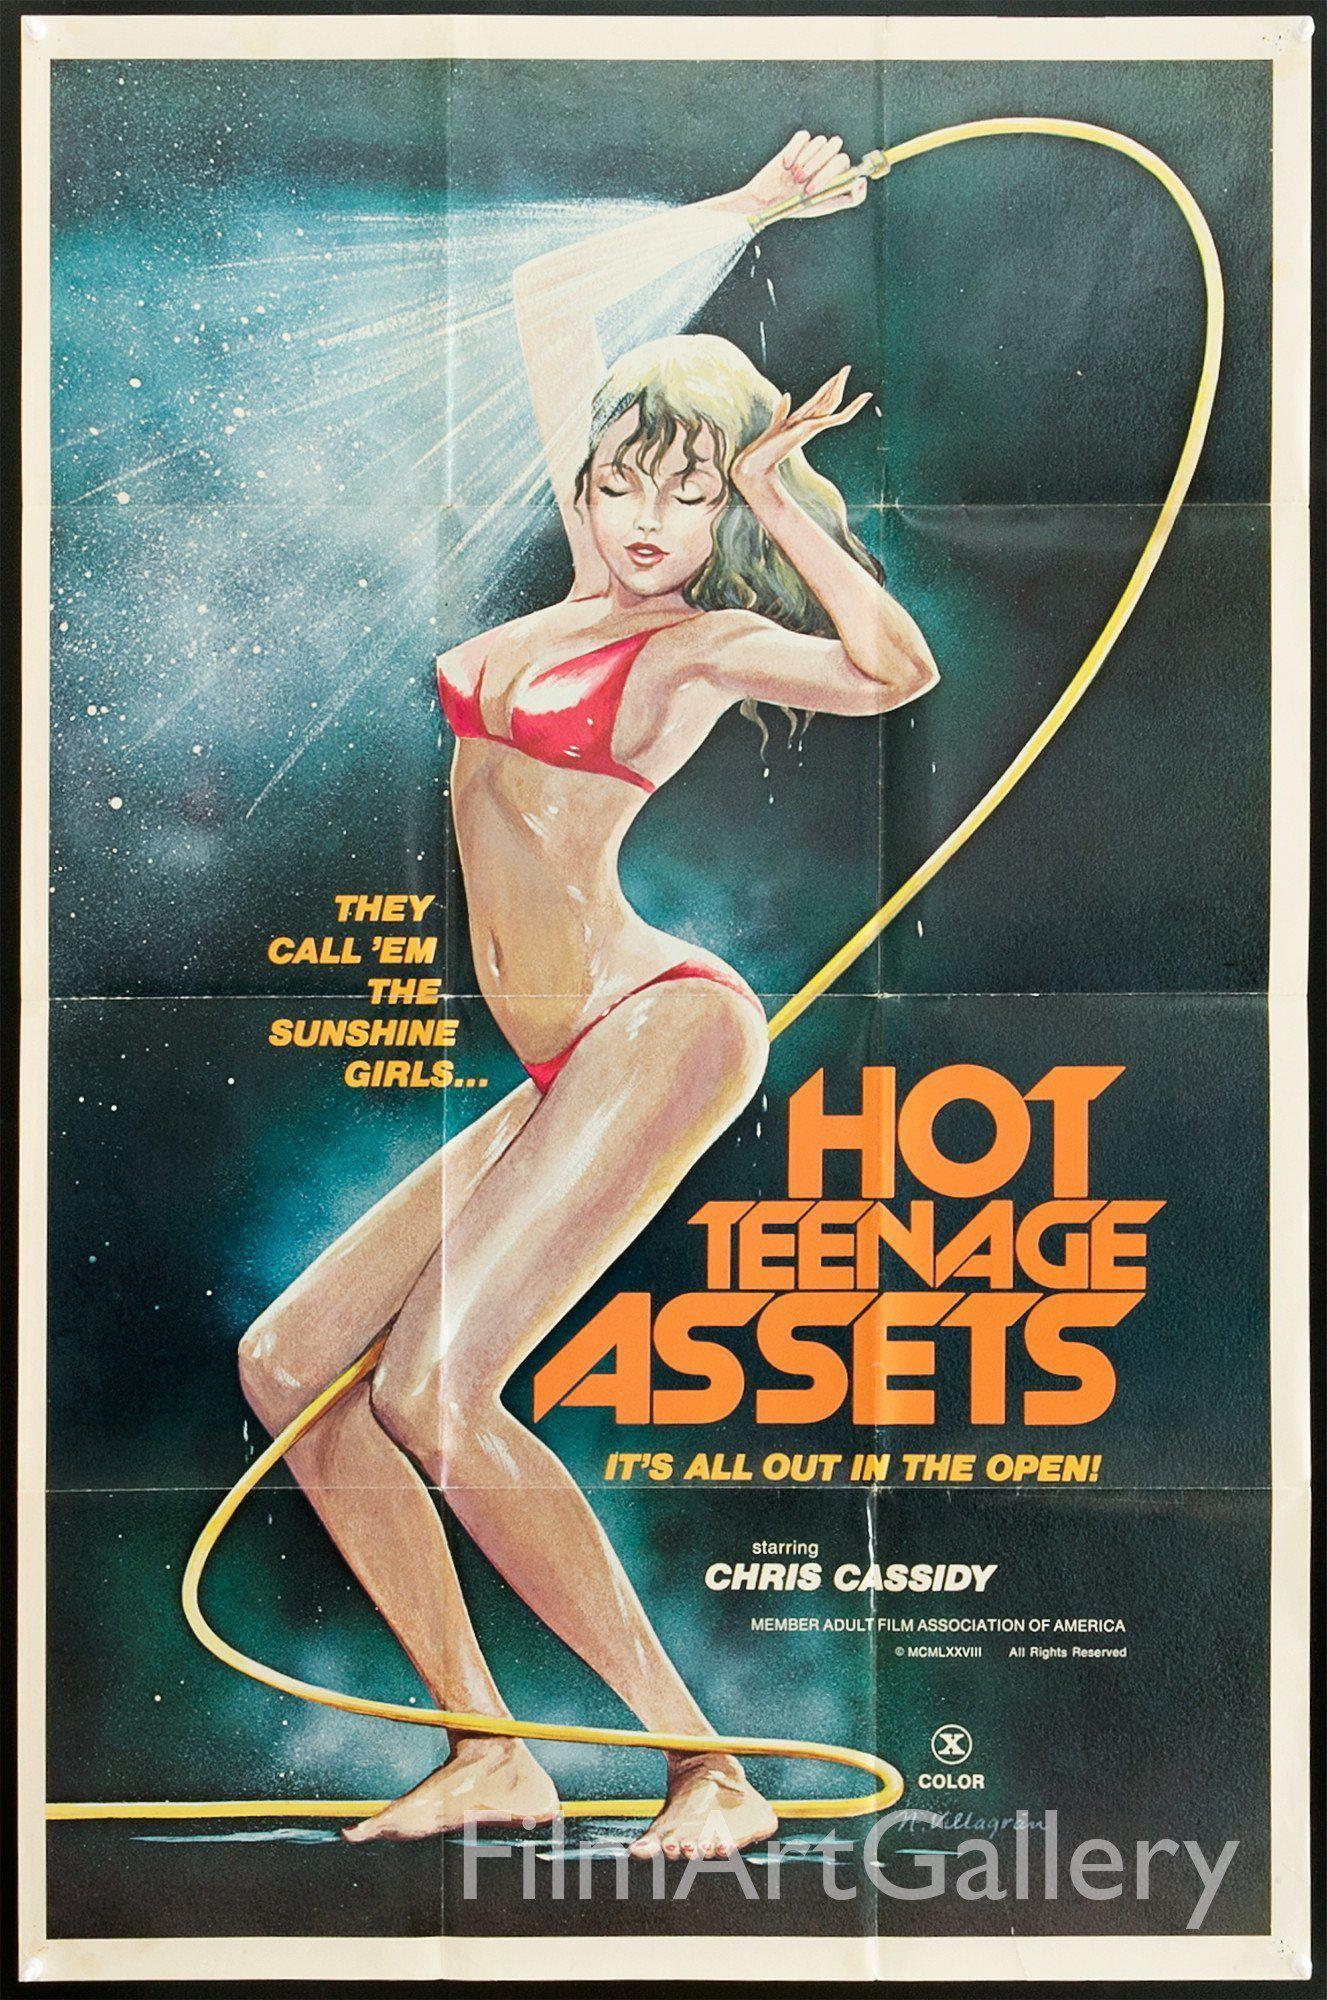 Hot Teenage Assets 1 Sheet (27x41) Original Vintage Movie Poster